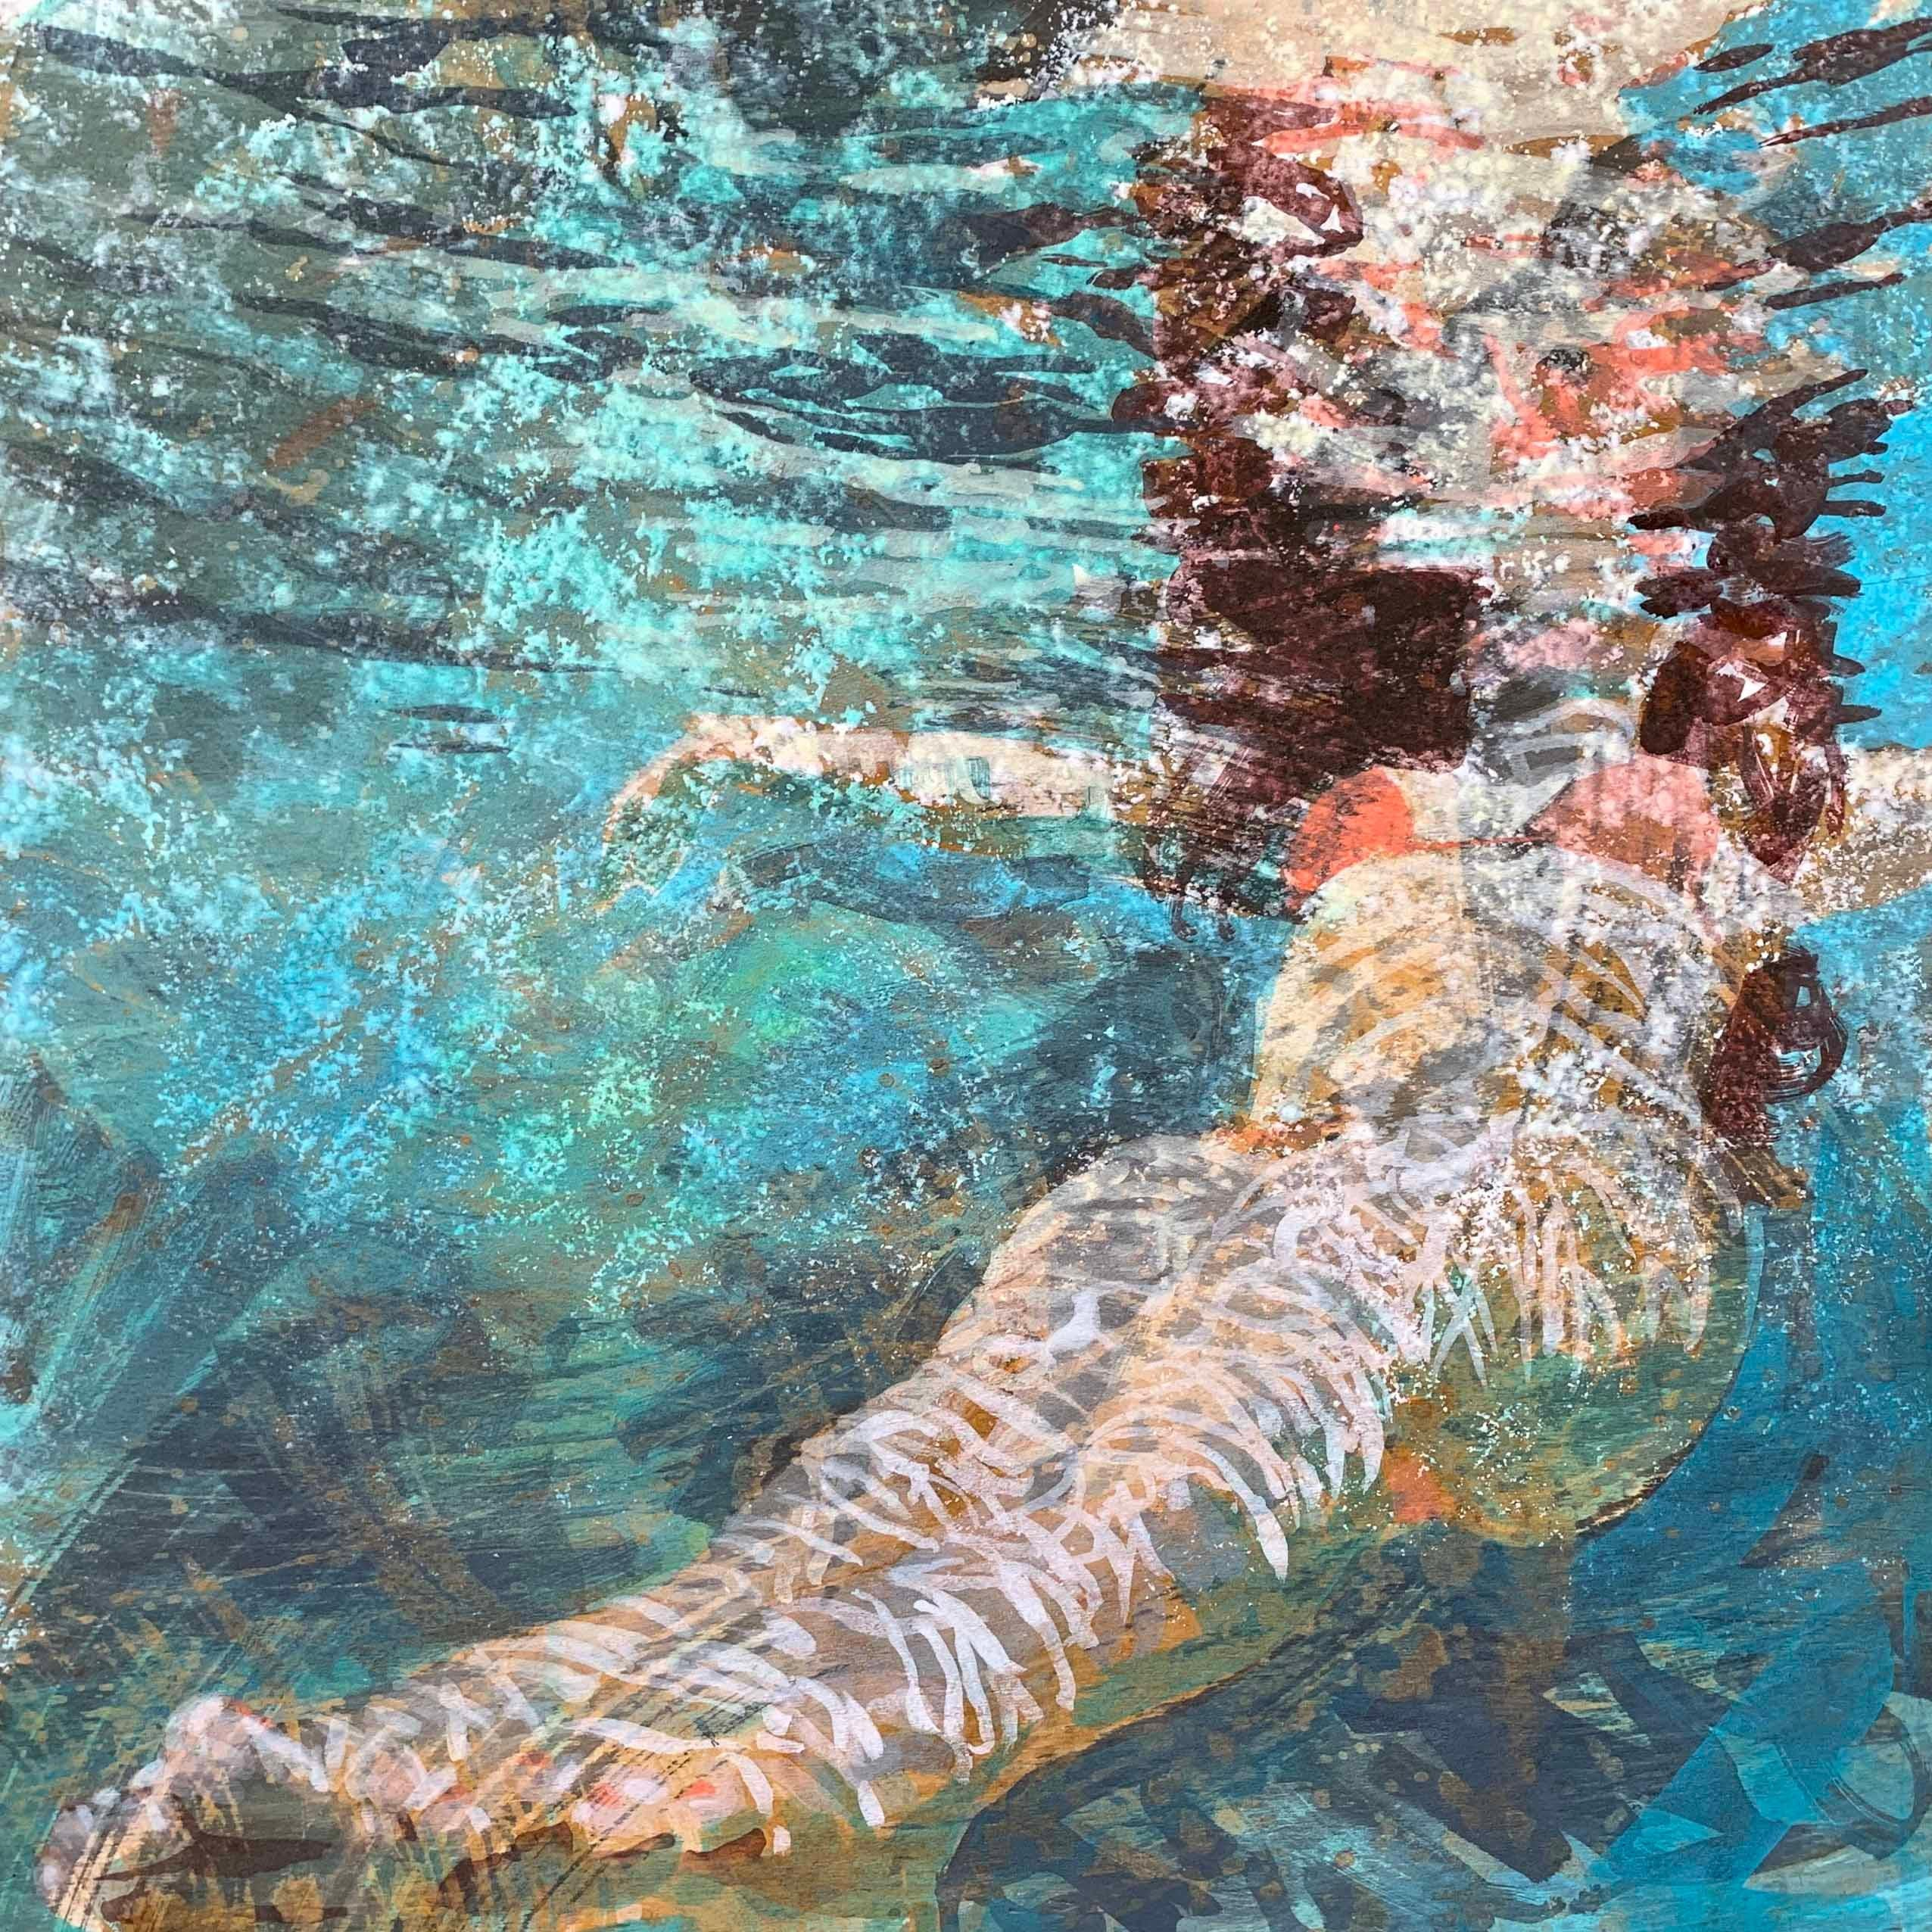 Effervescence, Swimmer, Water, Floating, Painting, Female, Figurative, Beach